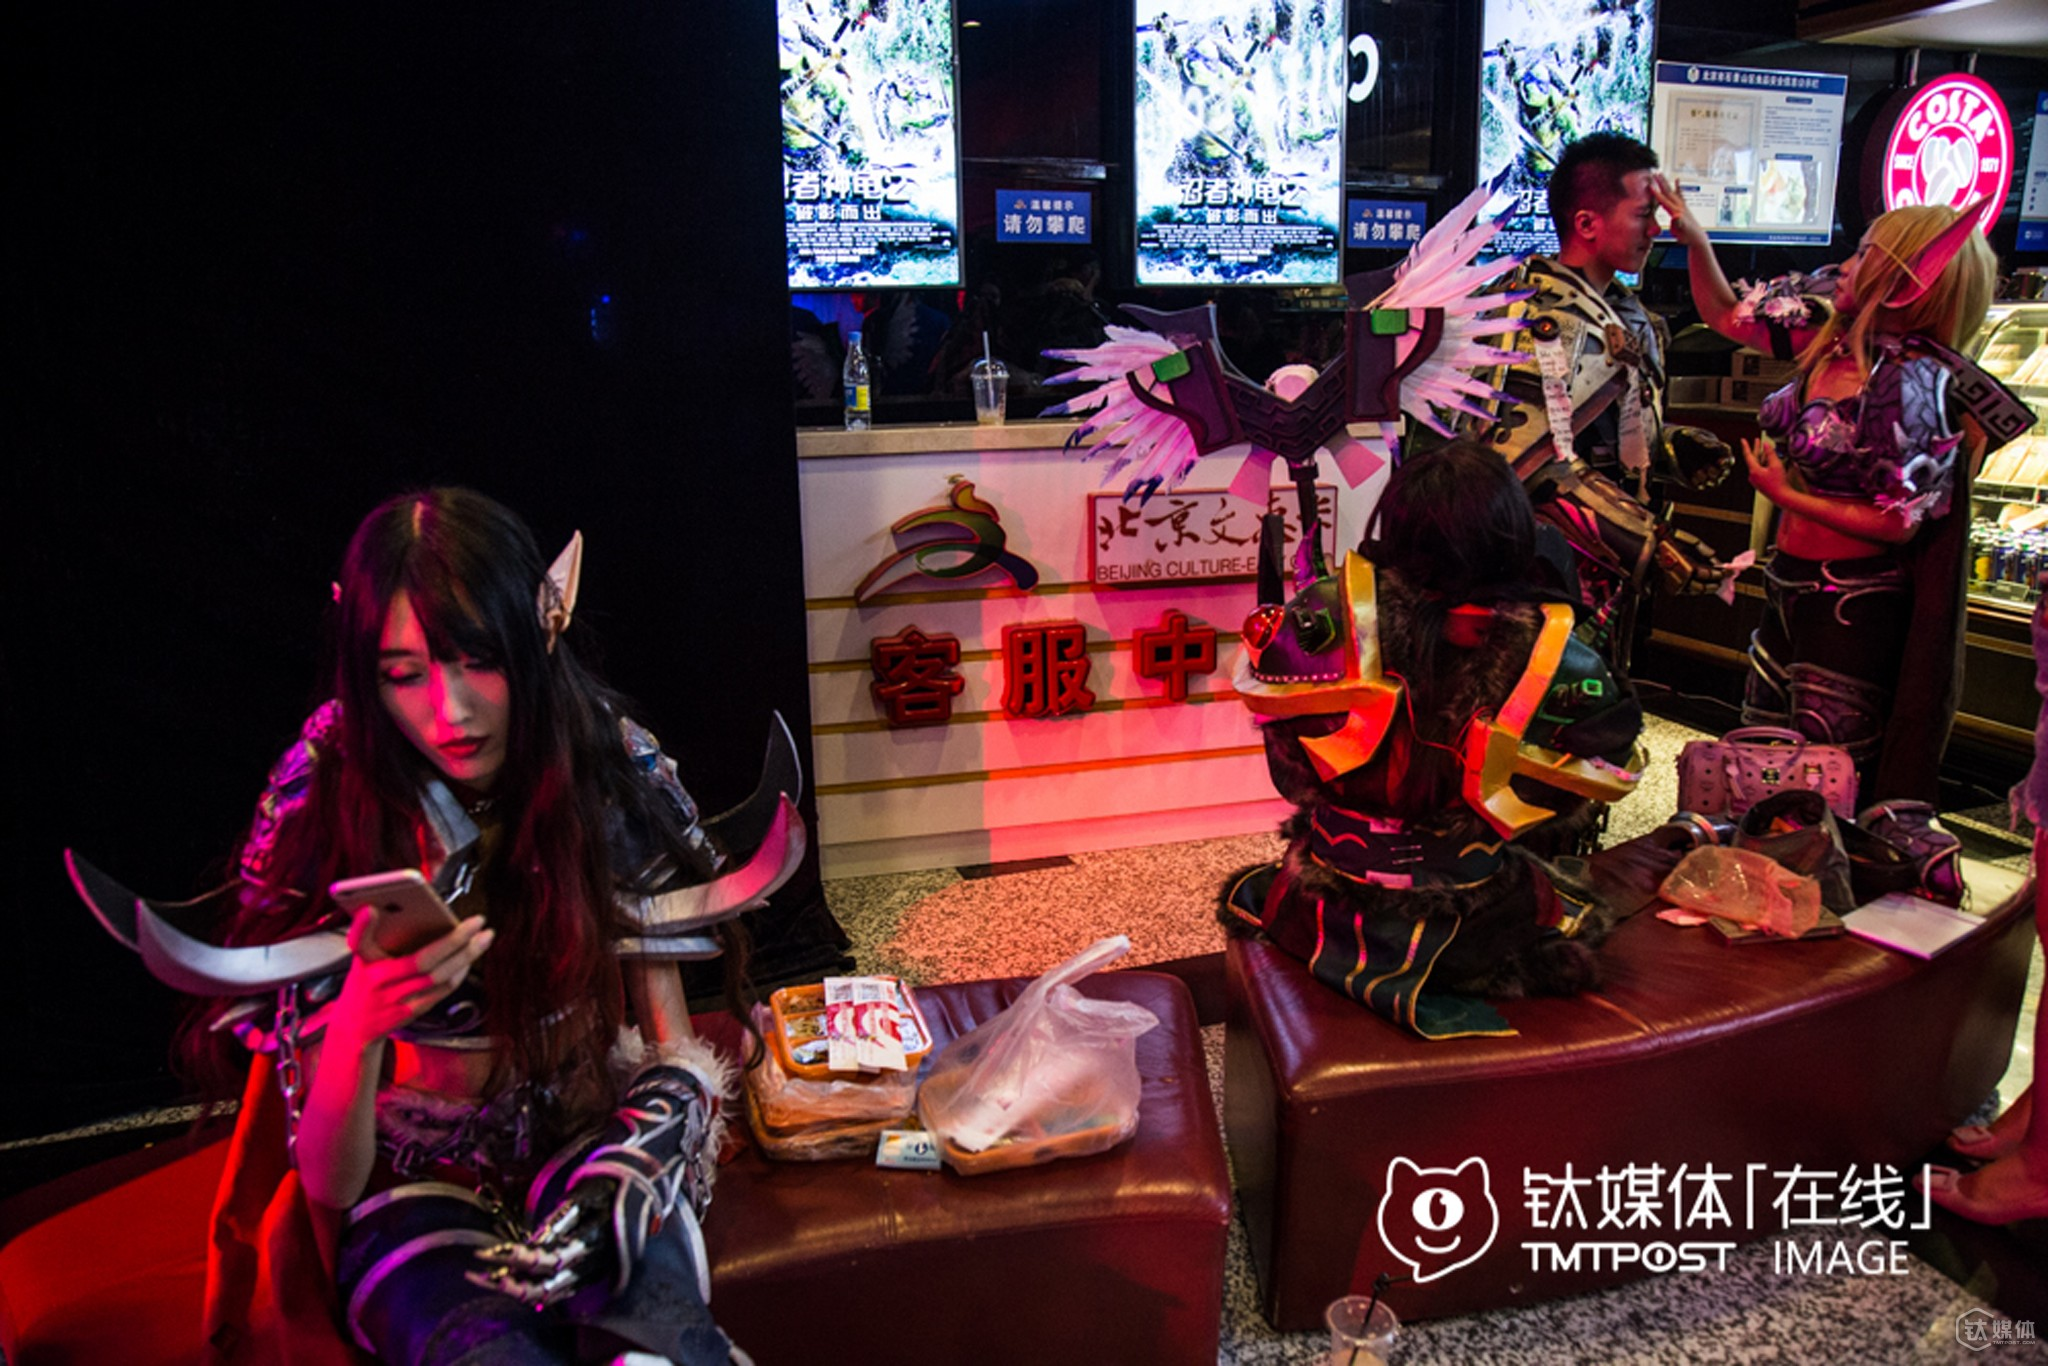 """Before the show, they grabbed a lunch in the hall of Wanda Film Theatre. To ensure the quality of their """"weapons and dresses"""", they would spend 3-4 thousand RMB purchasing these stuffs, so they often made up themselves to lower cost."""